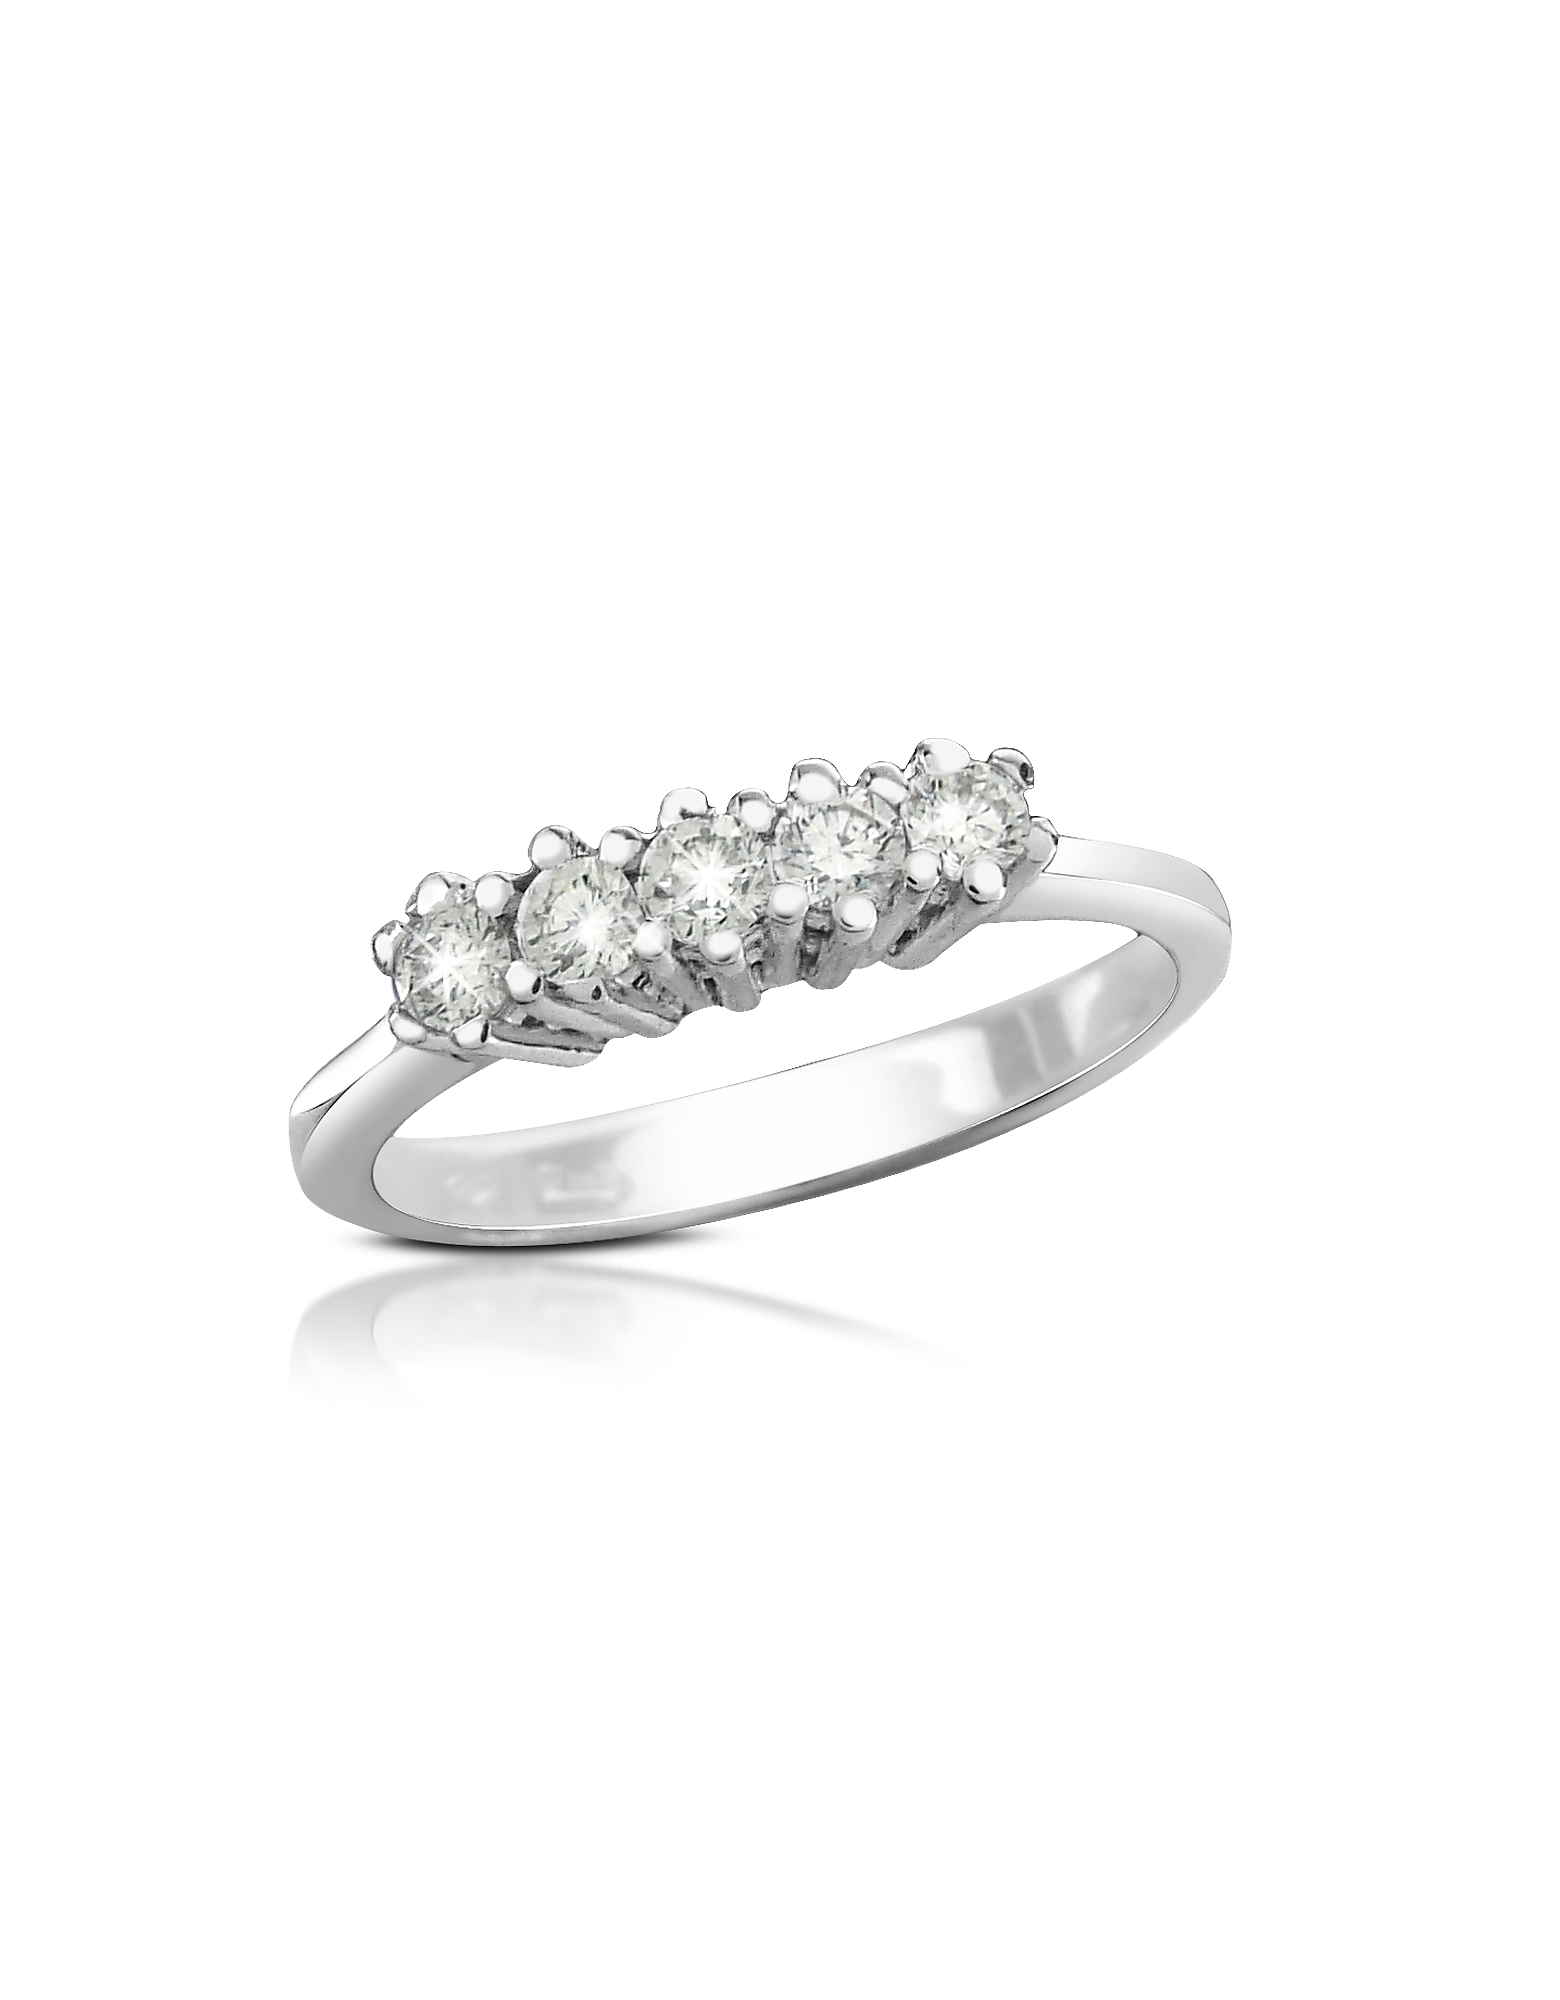 Forzieri Rings, 0.225 ct Diamond 18K Gold Band Ring